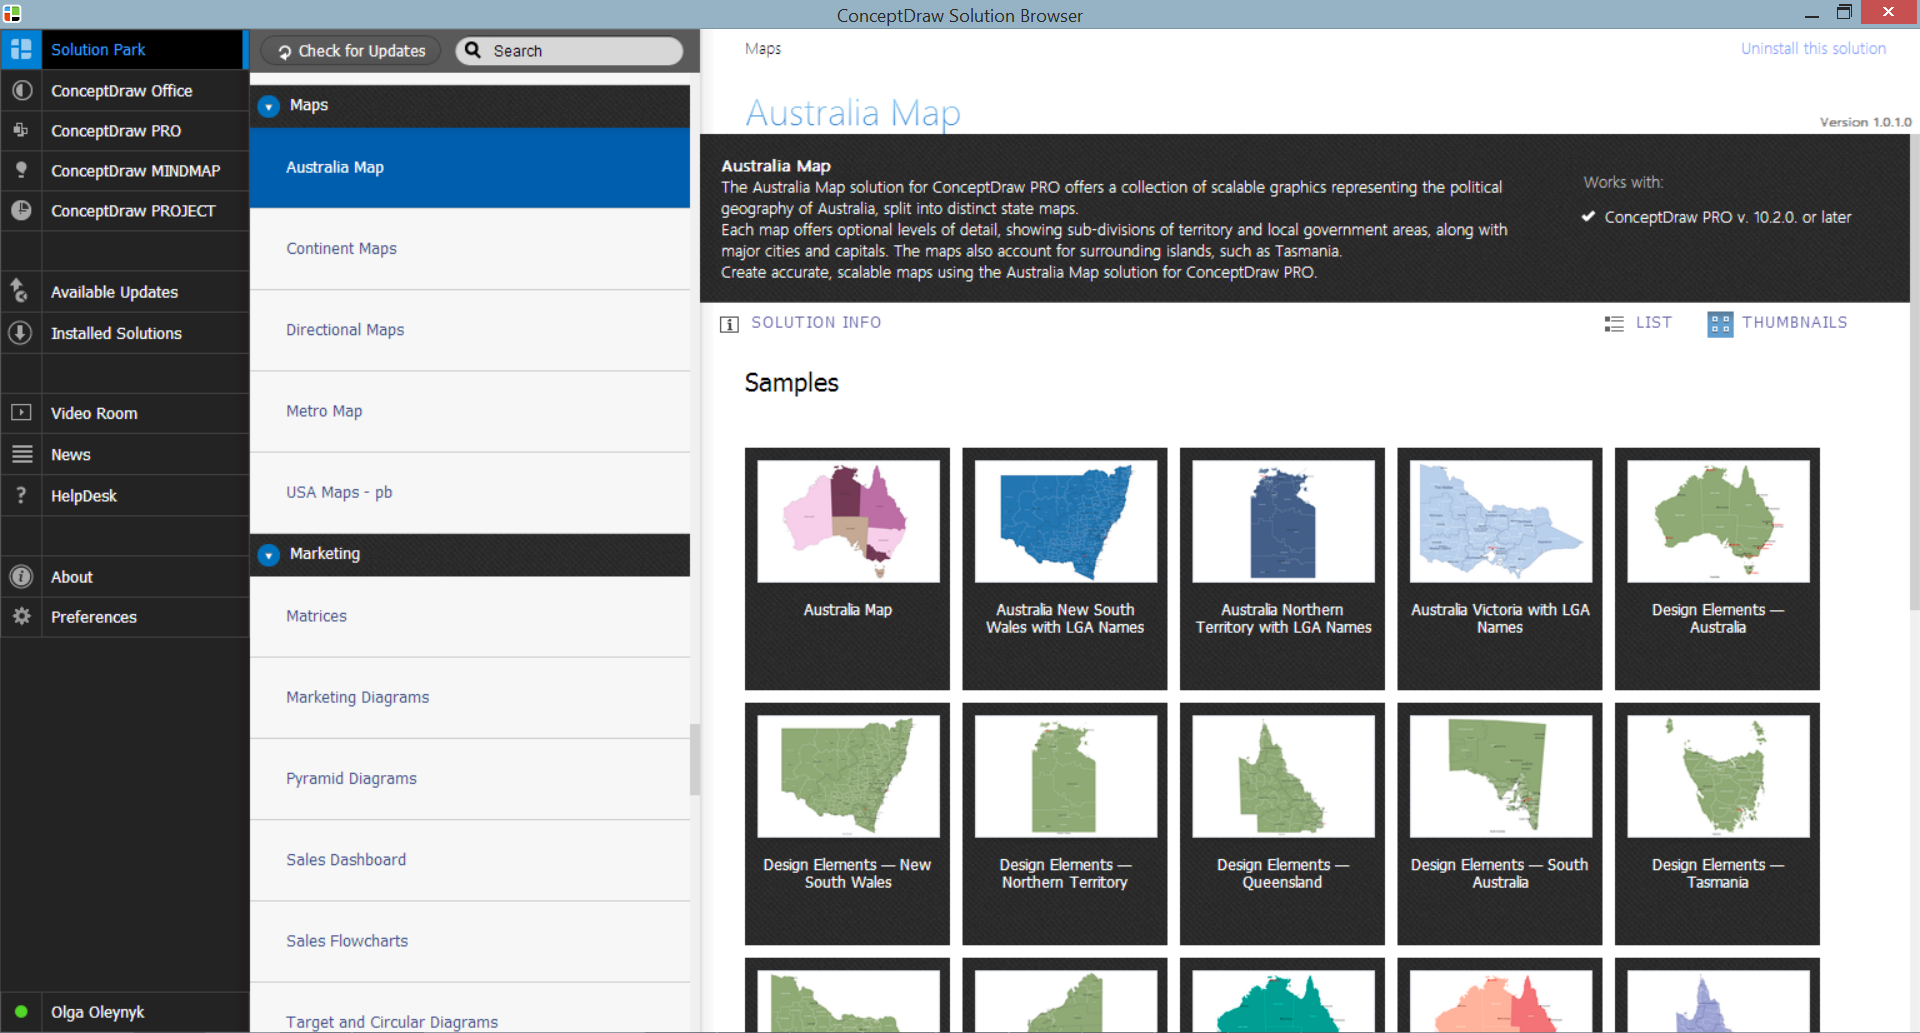 Australia Map Solution in ConceptDraw STORE